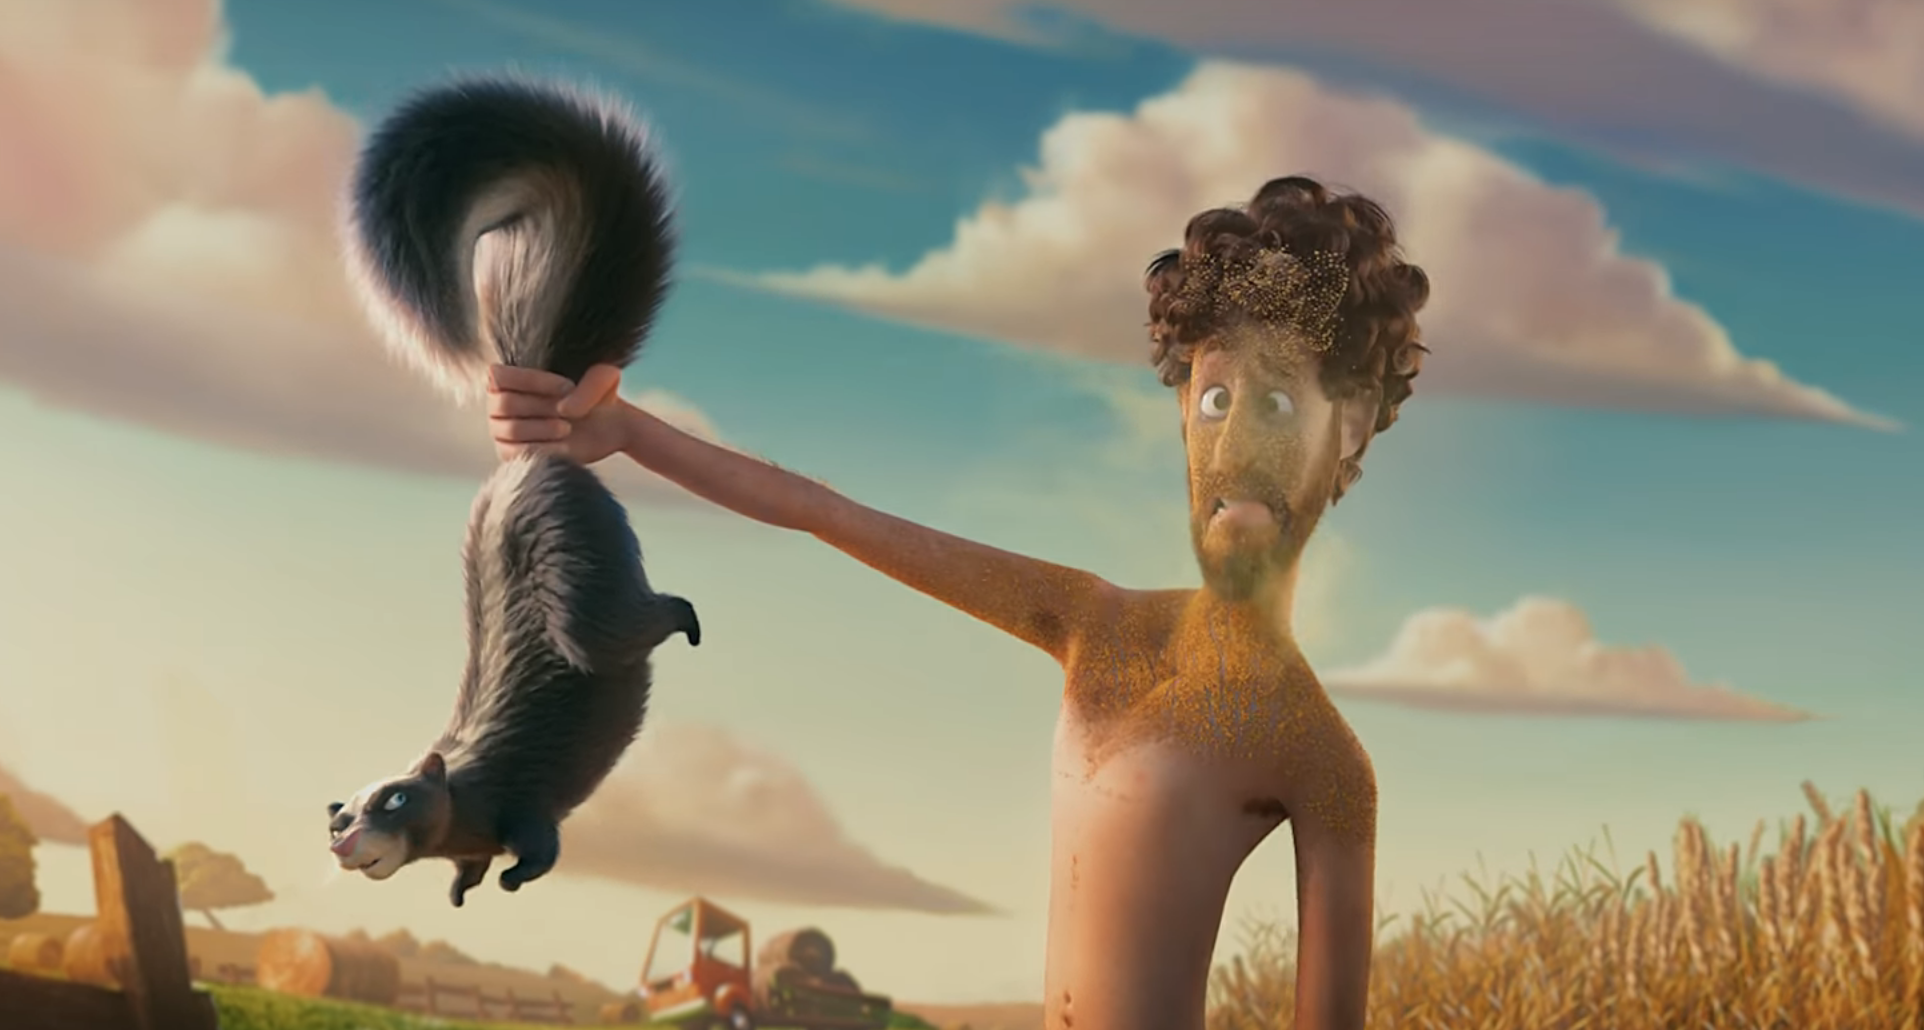 """Lil Dicky reveals epic """"Earth"""" video featuring Justin Bieber, Ariana Grande, Leonardo DiCaprio, more: Watch"""